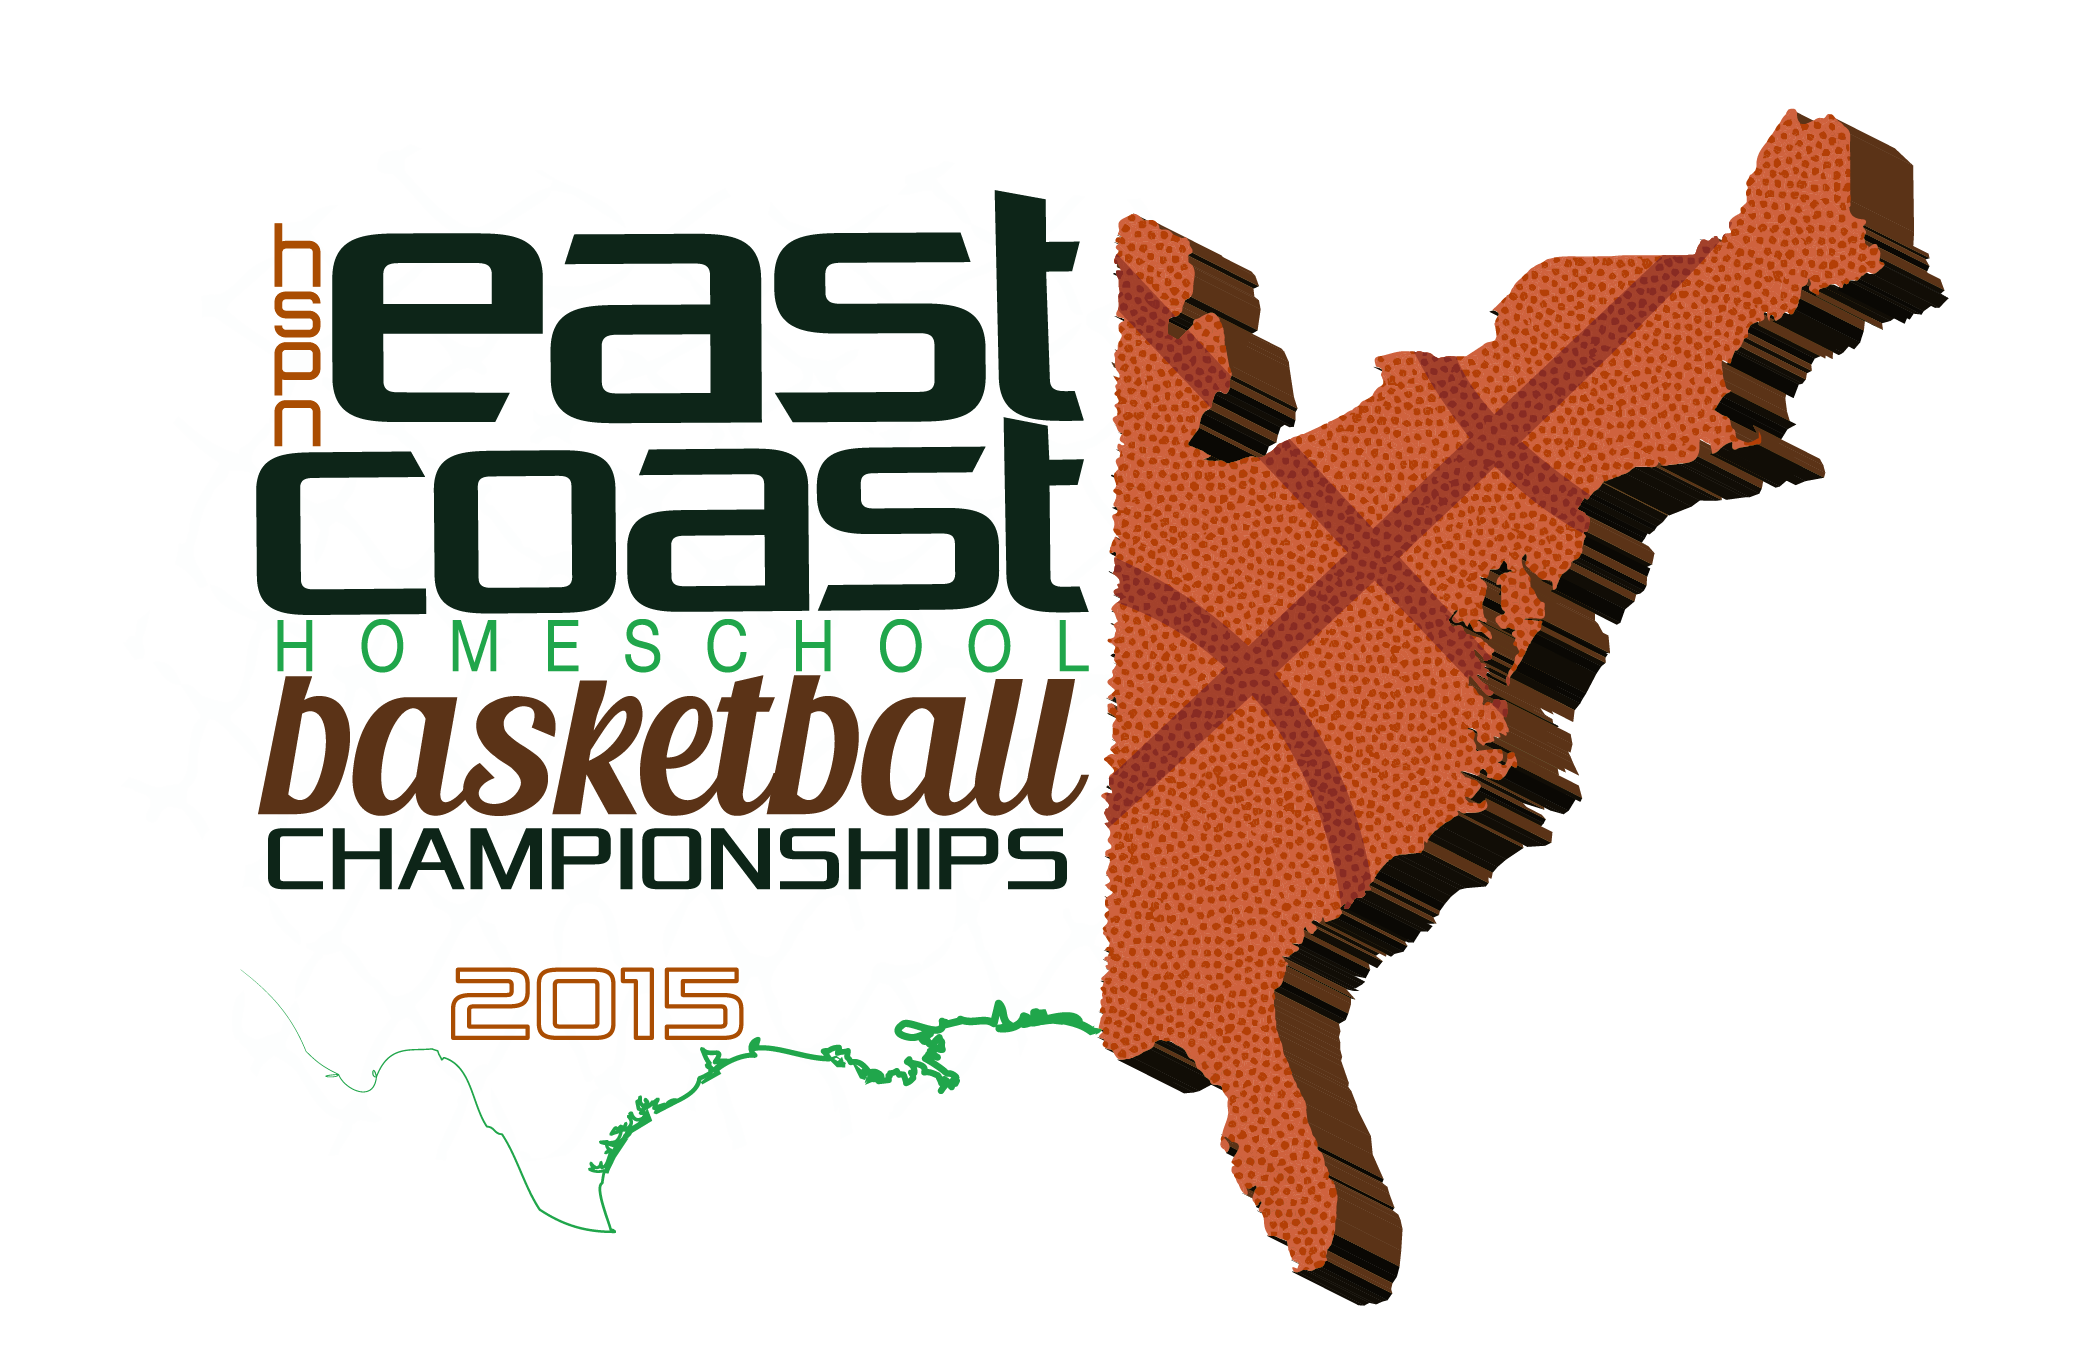 2015 East Coast Homeschool Basketball Championships